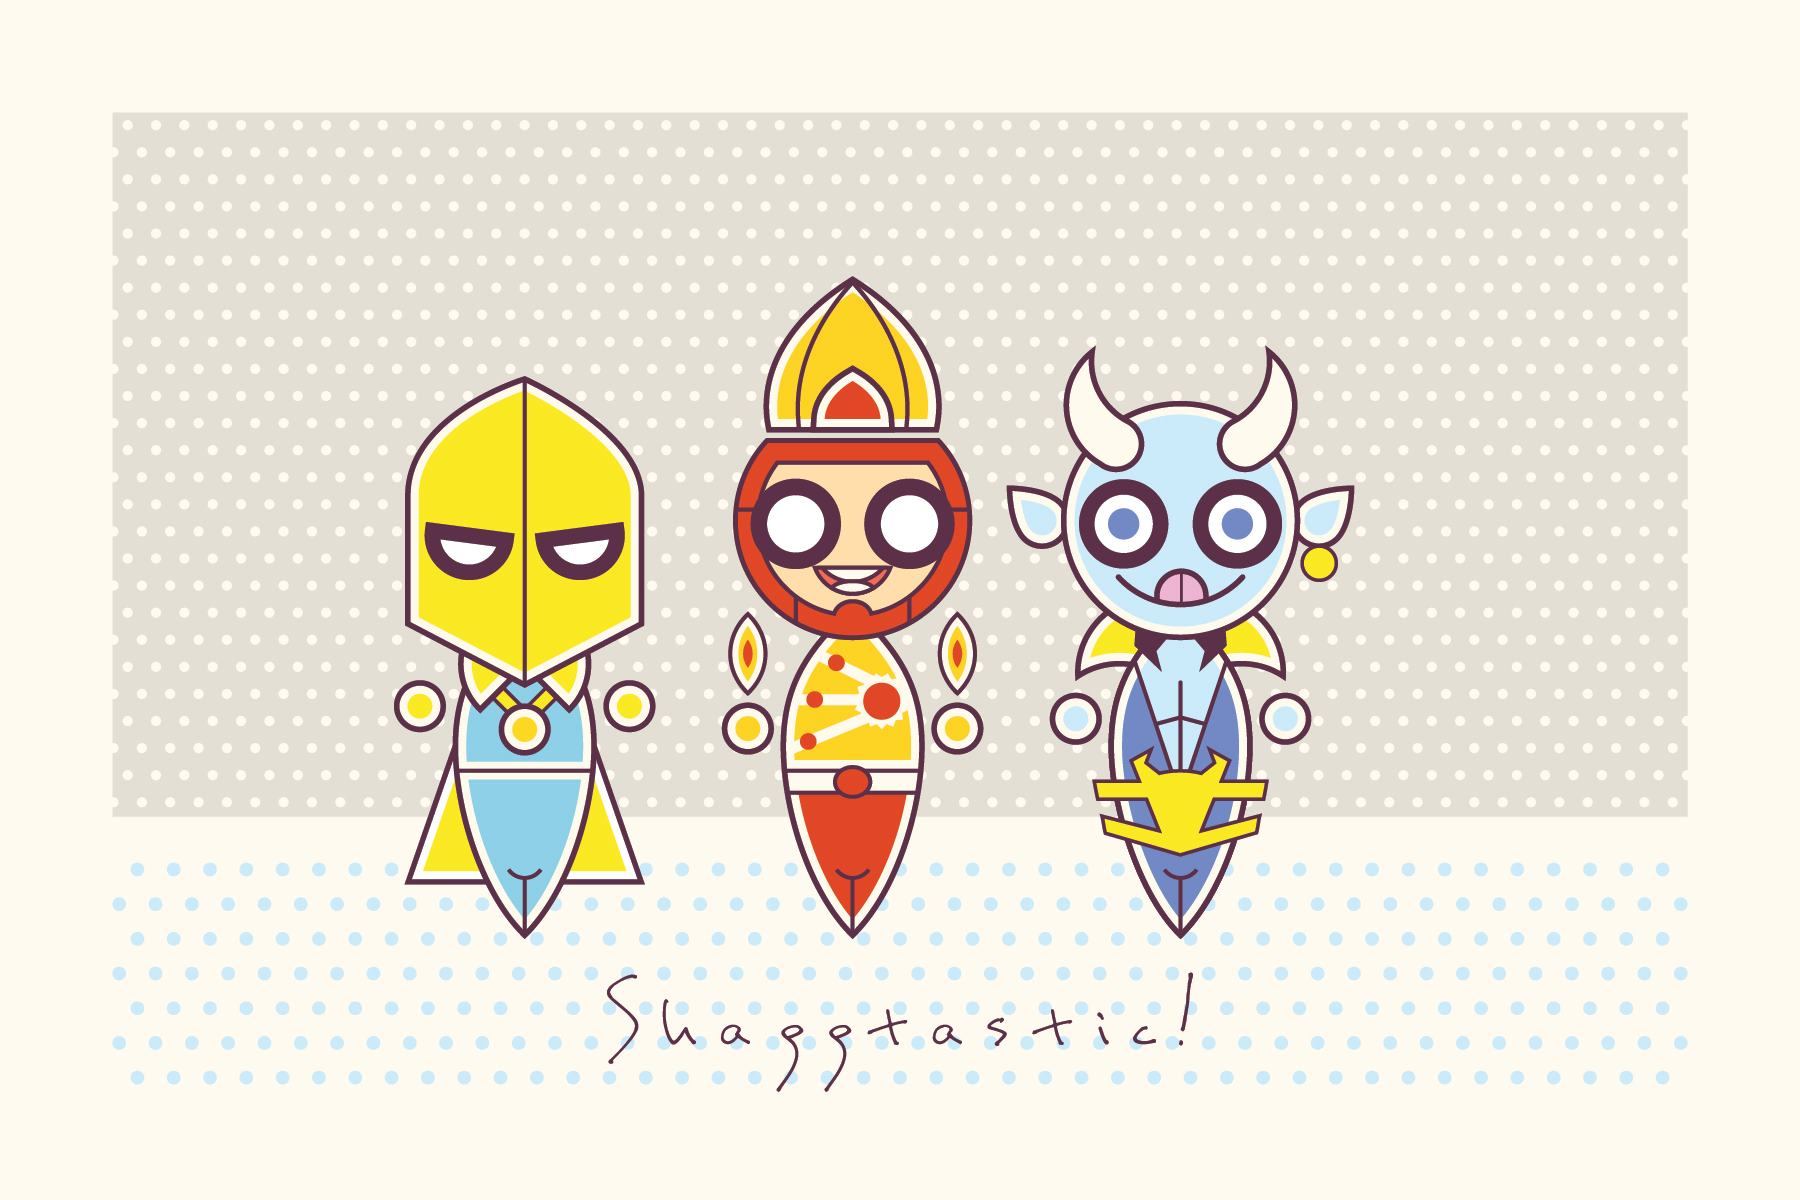 Firestorm, Doctor Fate, and Blue Devil are Shaggtastic by Luke Daab